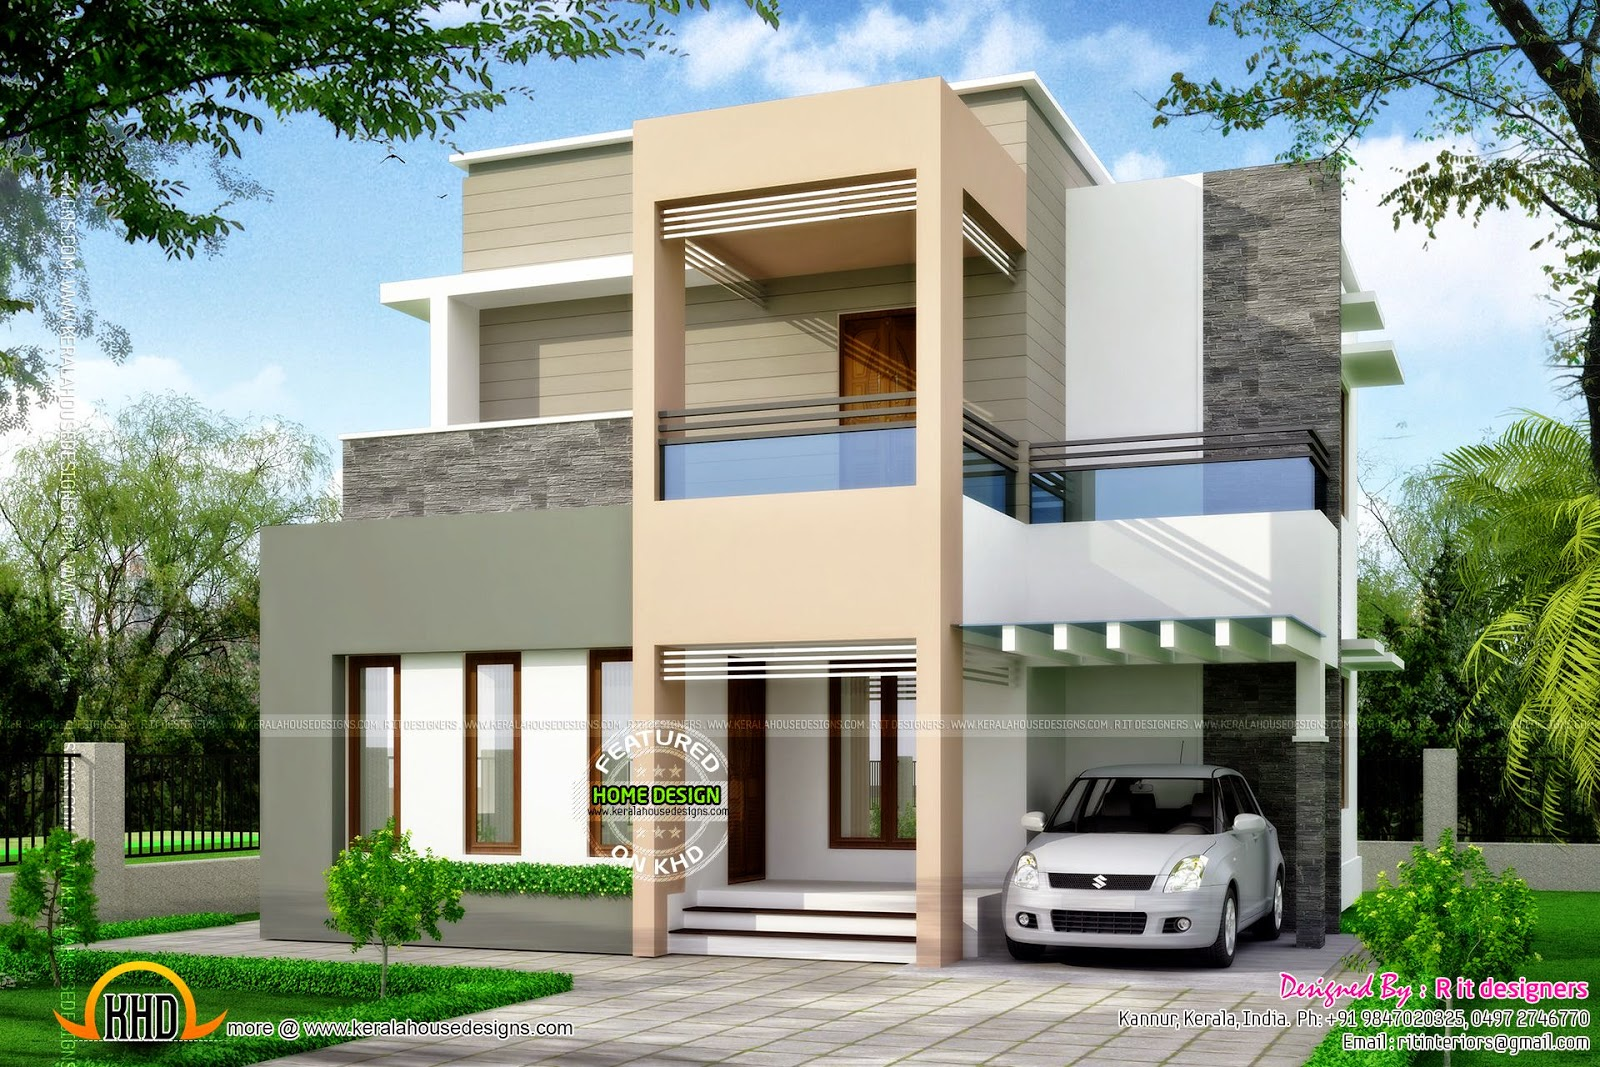 Clean box type house exterior kerala home design and for Type of floors in houses